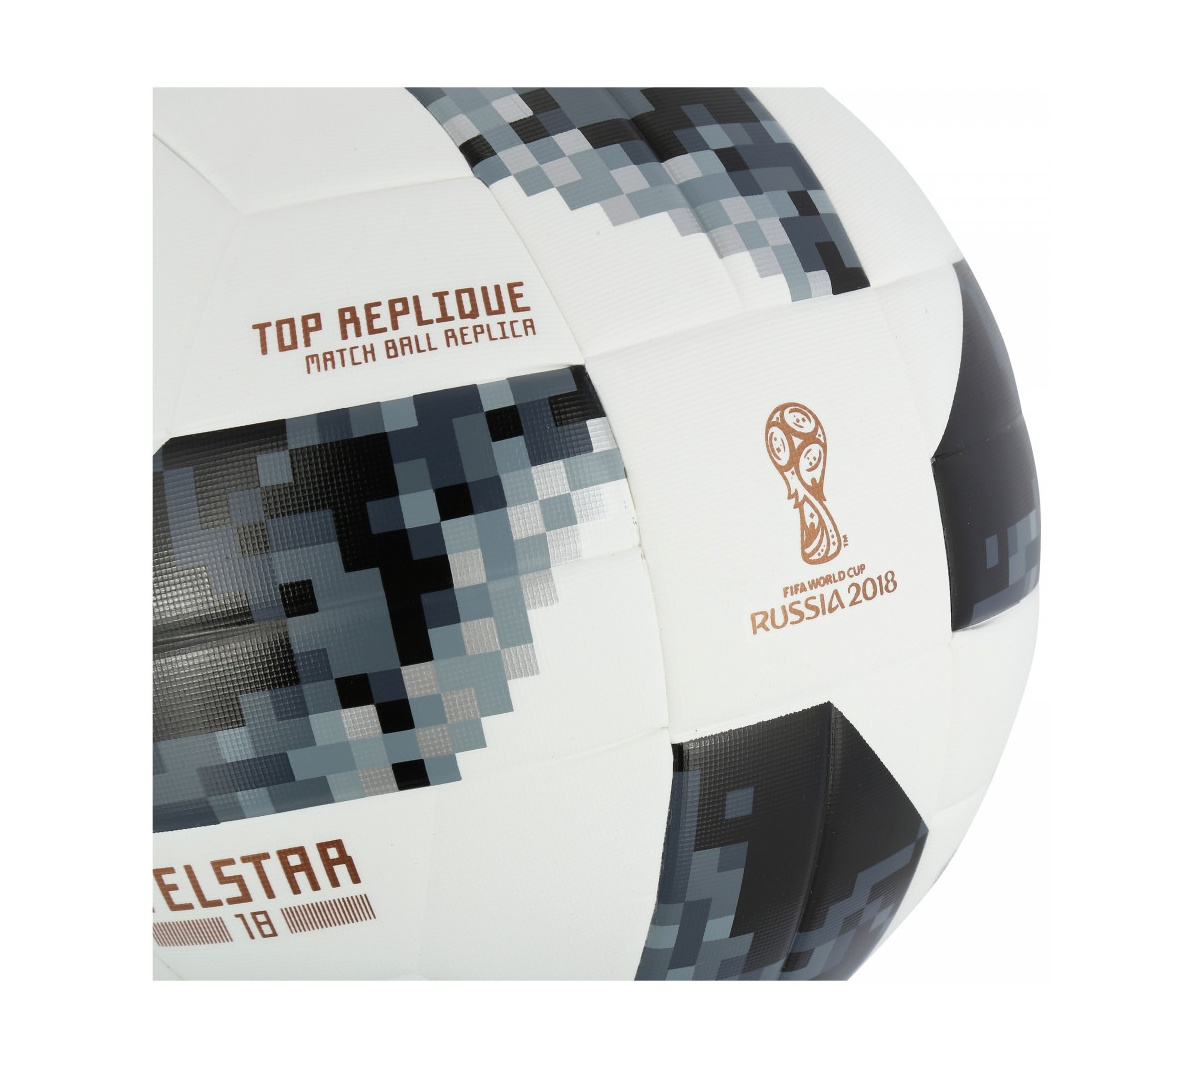 ... Bola Adidas Telstar Oficial Copa do Mundo FIFA 2018 Top Replique ... 1732daf2e6be0